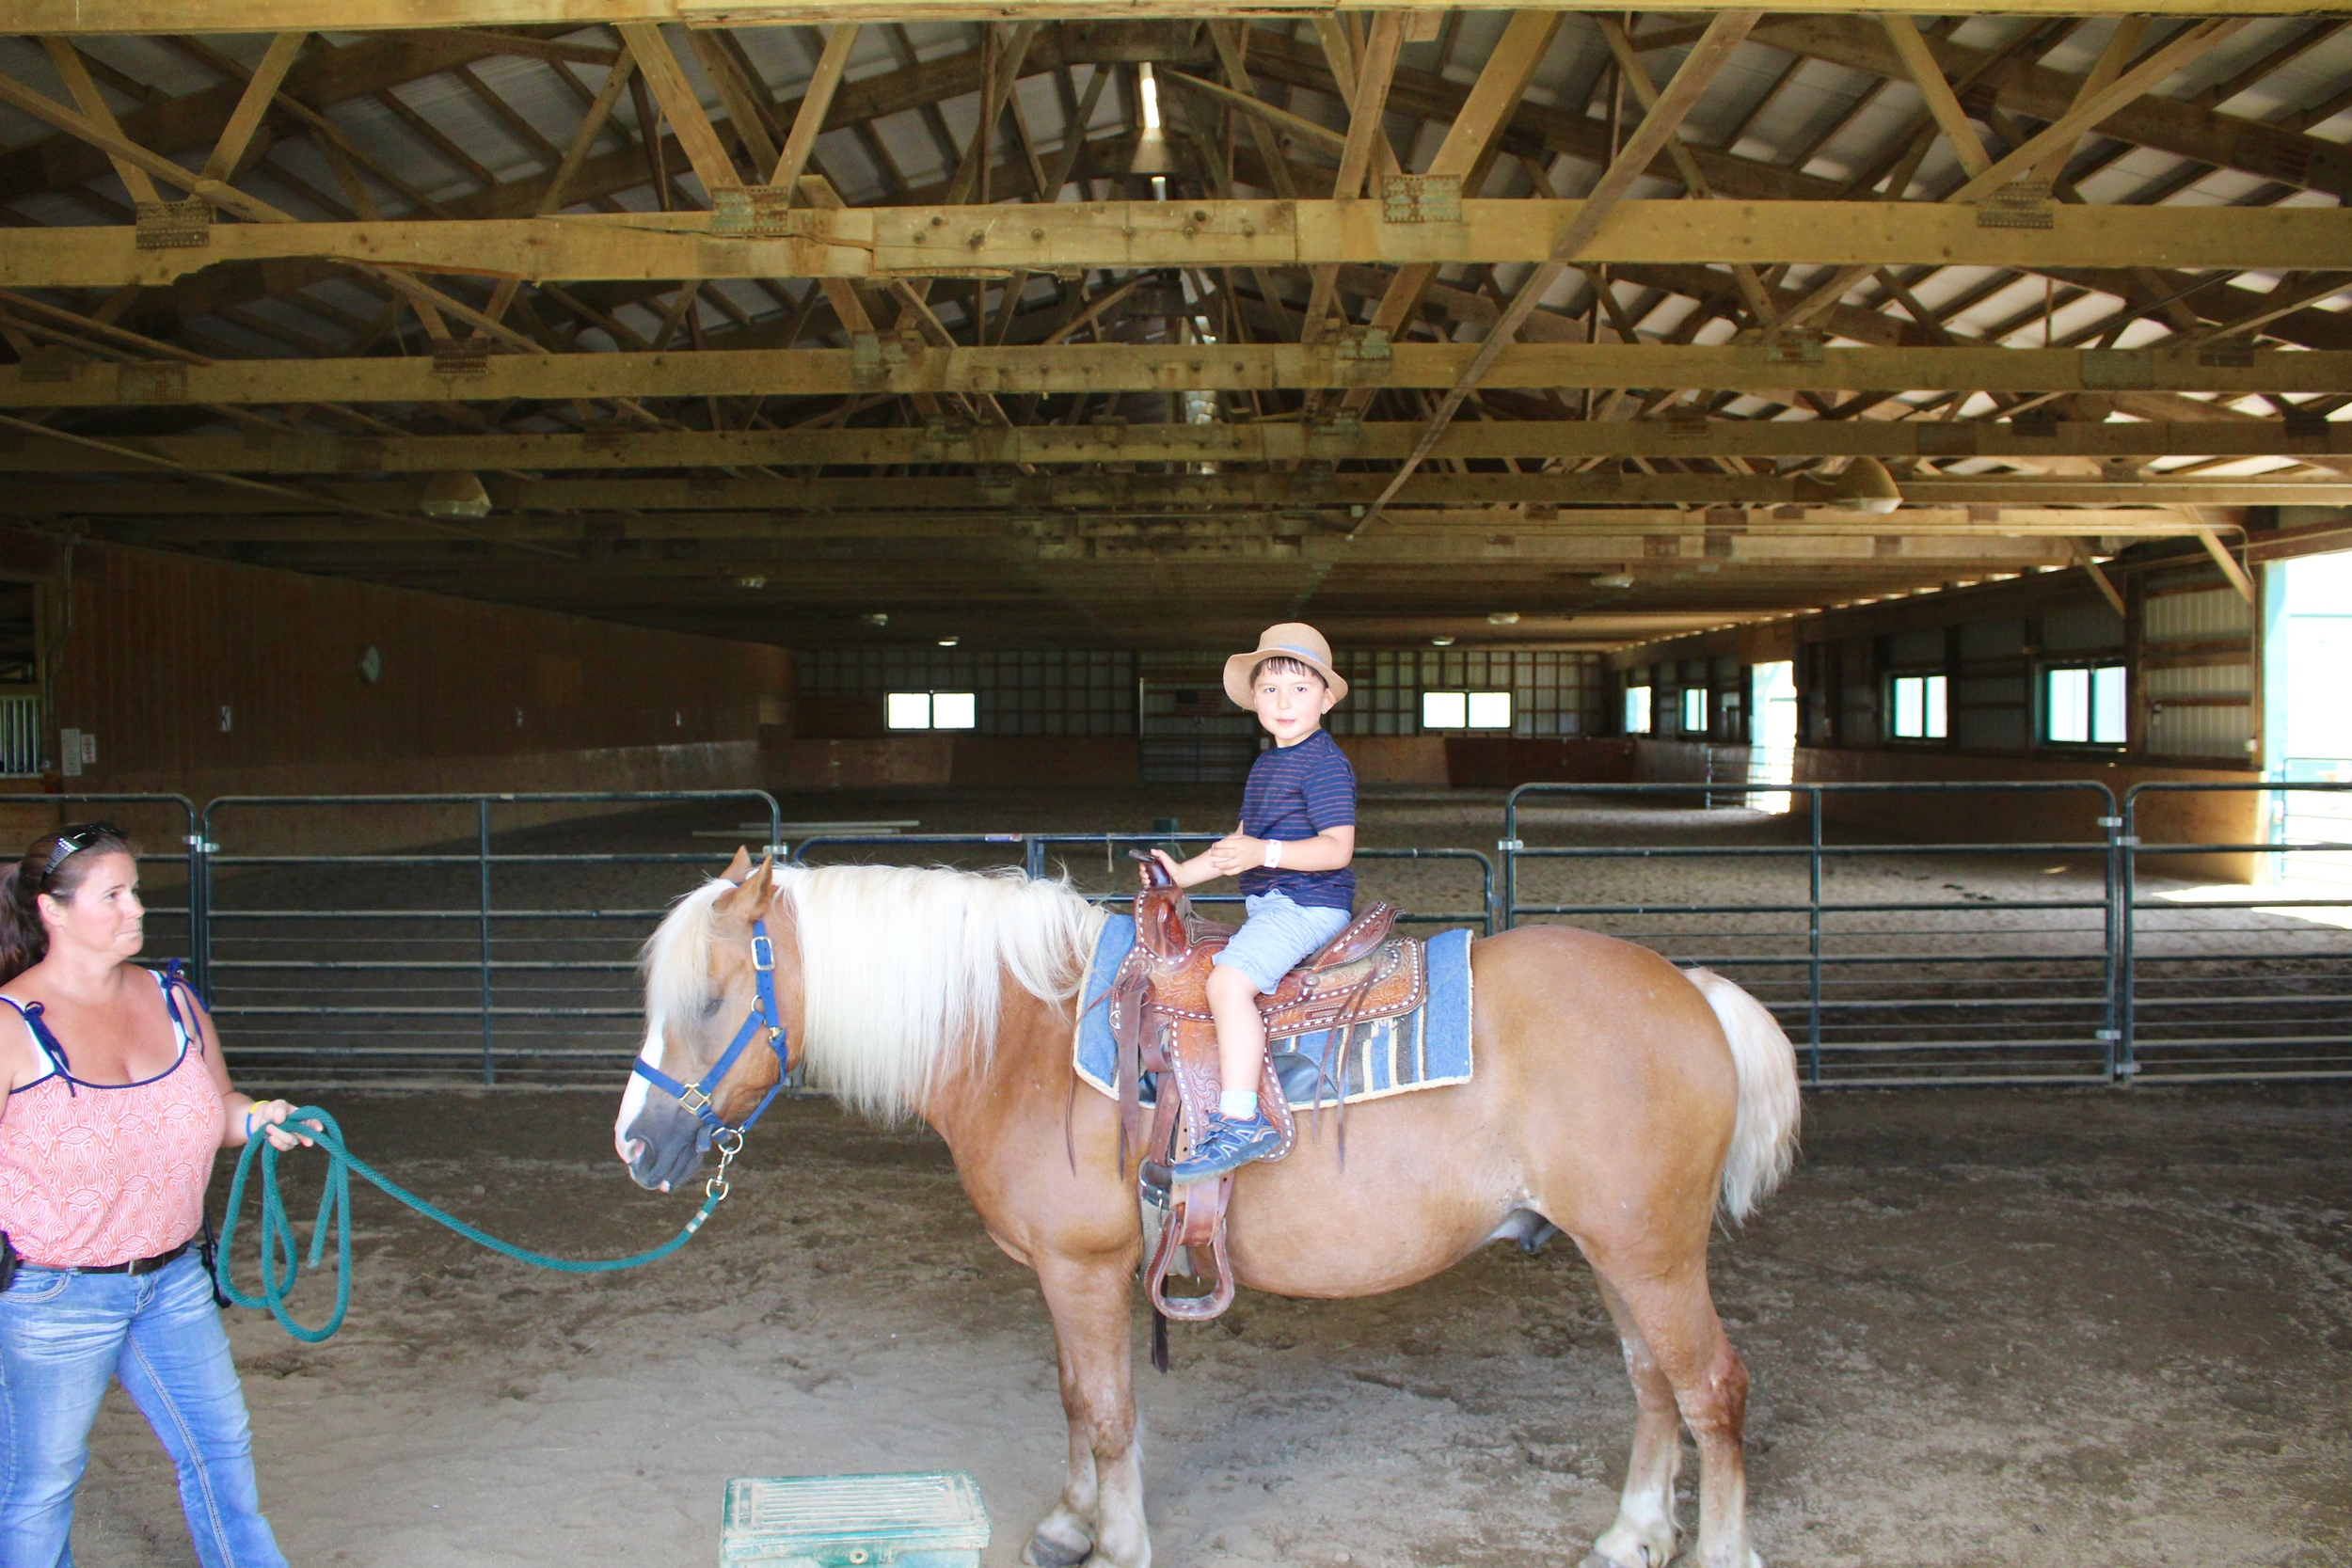 His first time riding a horse ^.^